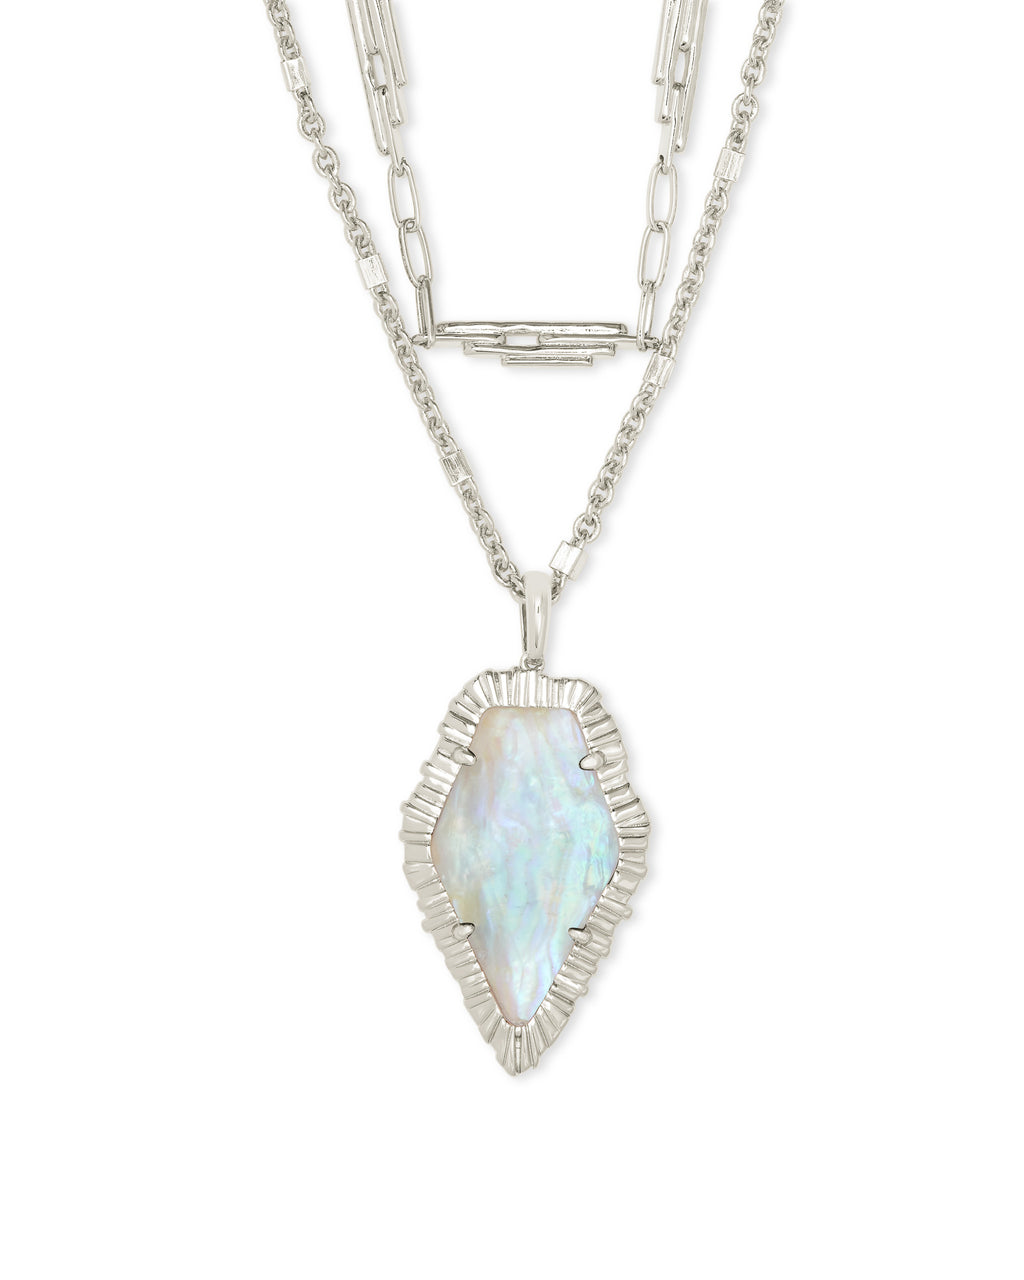 Tessa Multi Strand Necklace in Silver Iridescent Abalone